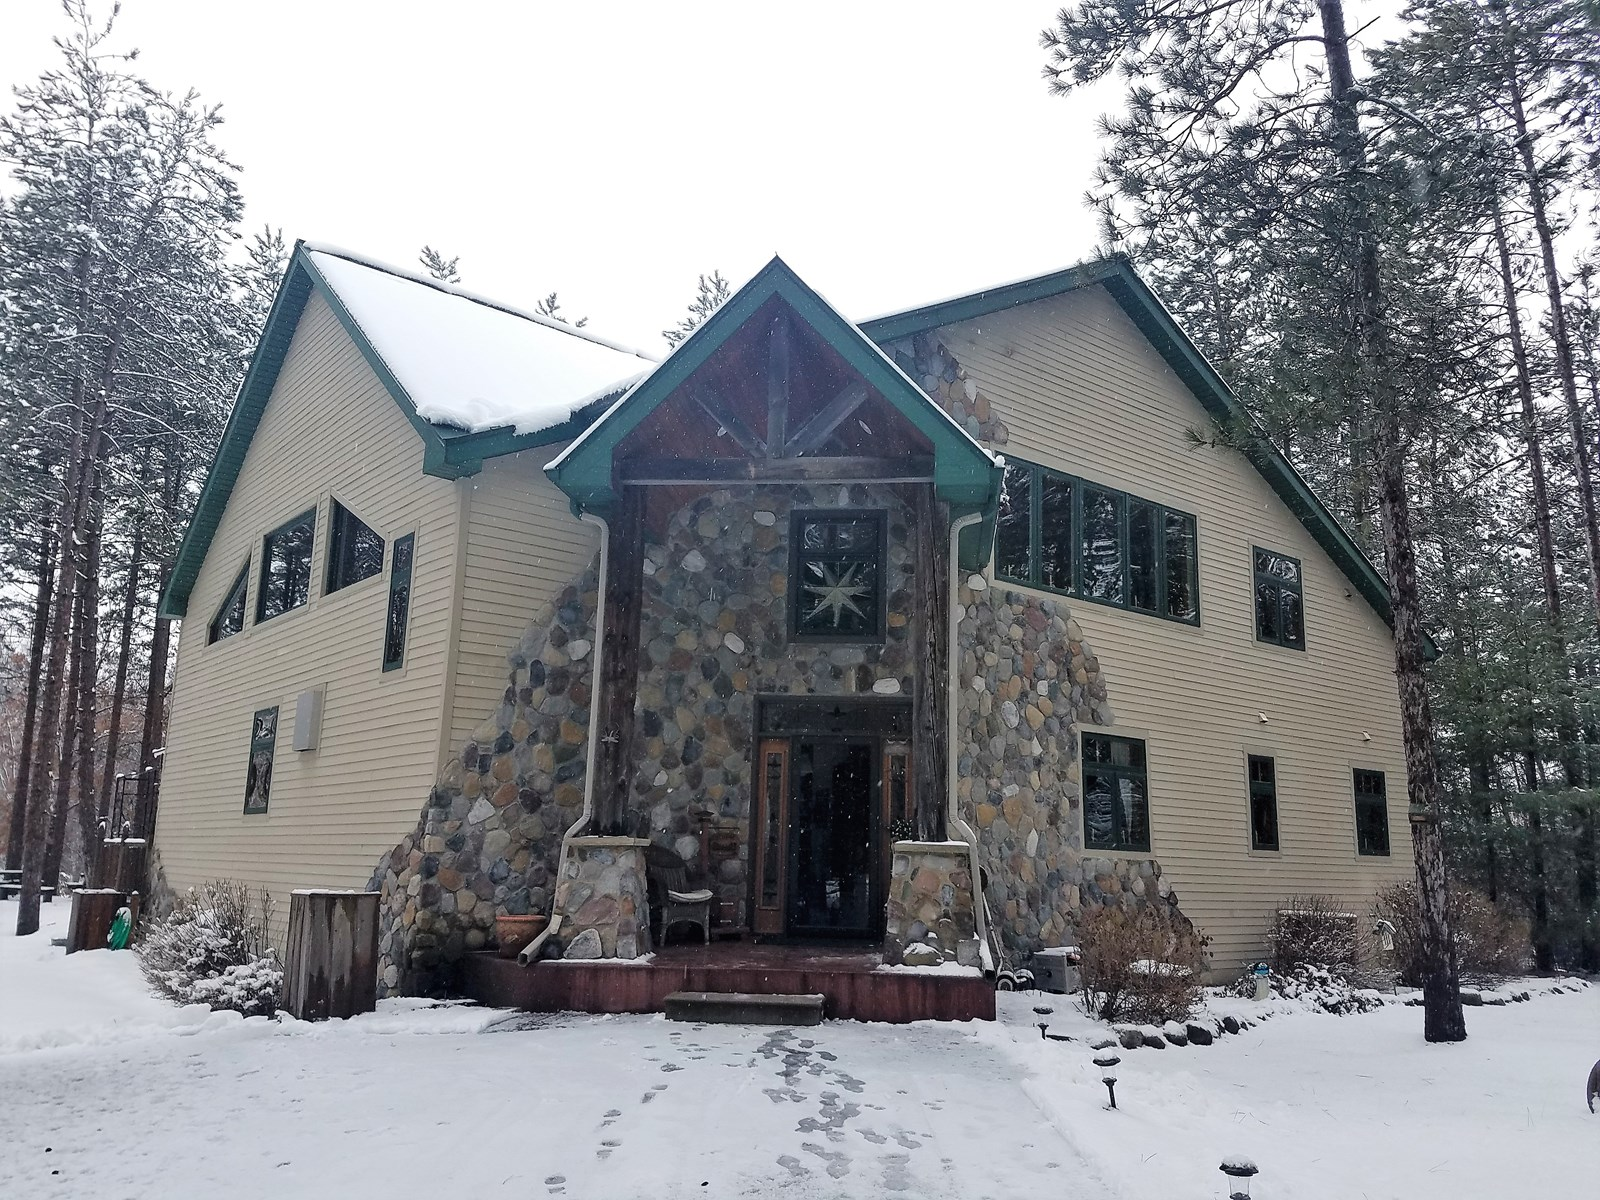 Lake Solitude Home for Sale in Waupaca WI